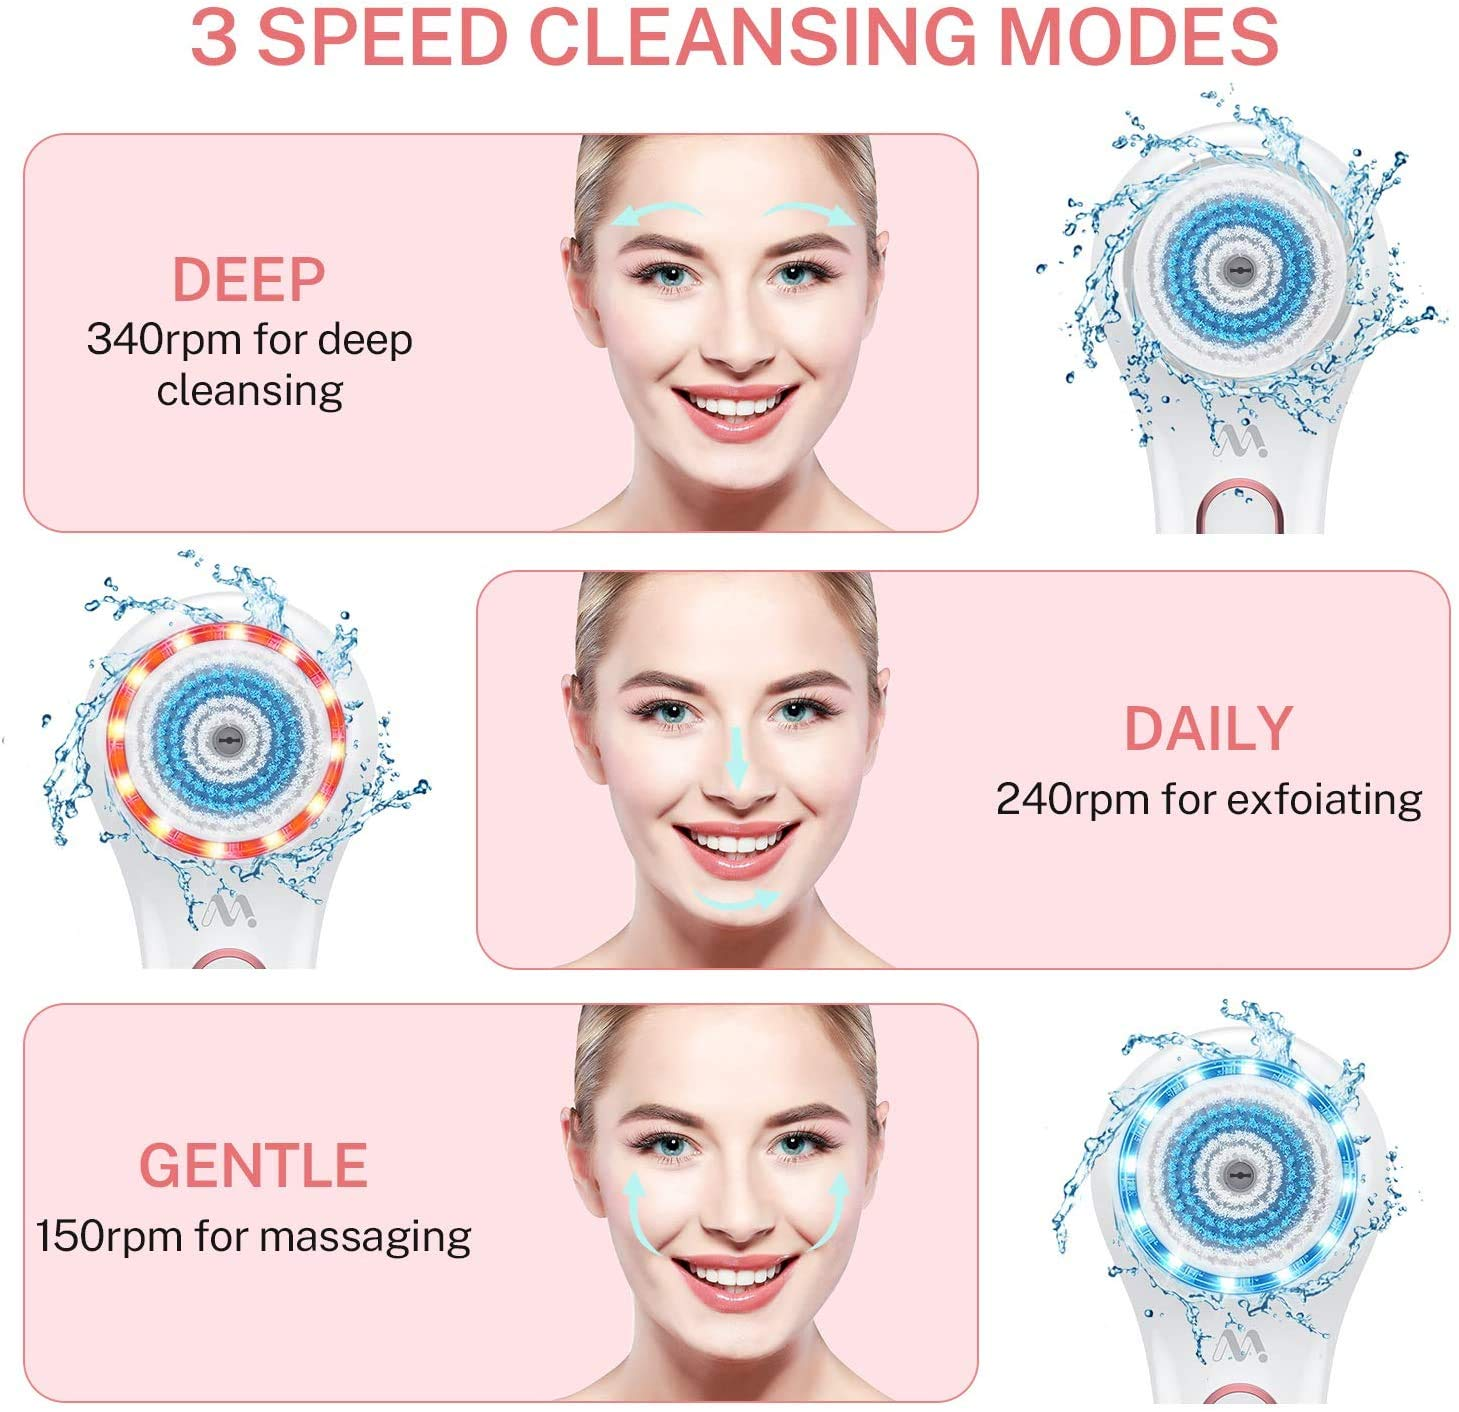 Electric Facial Cleansing Brush Waterproof Red/Blu Light Face Brush Spin Rechargeable Misiki IPX7 Exfoliating Face Brush with 3 Mode, 5 Brush Head for Exfoliating, Massaging, Removing Blackhead: Beauty